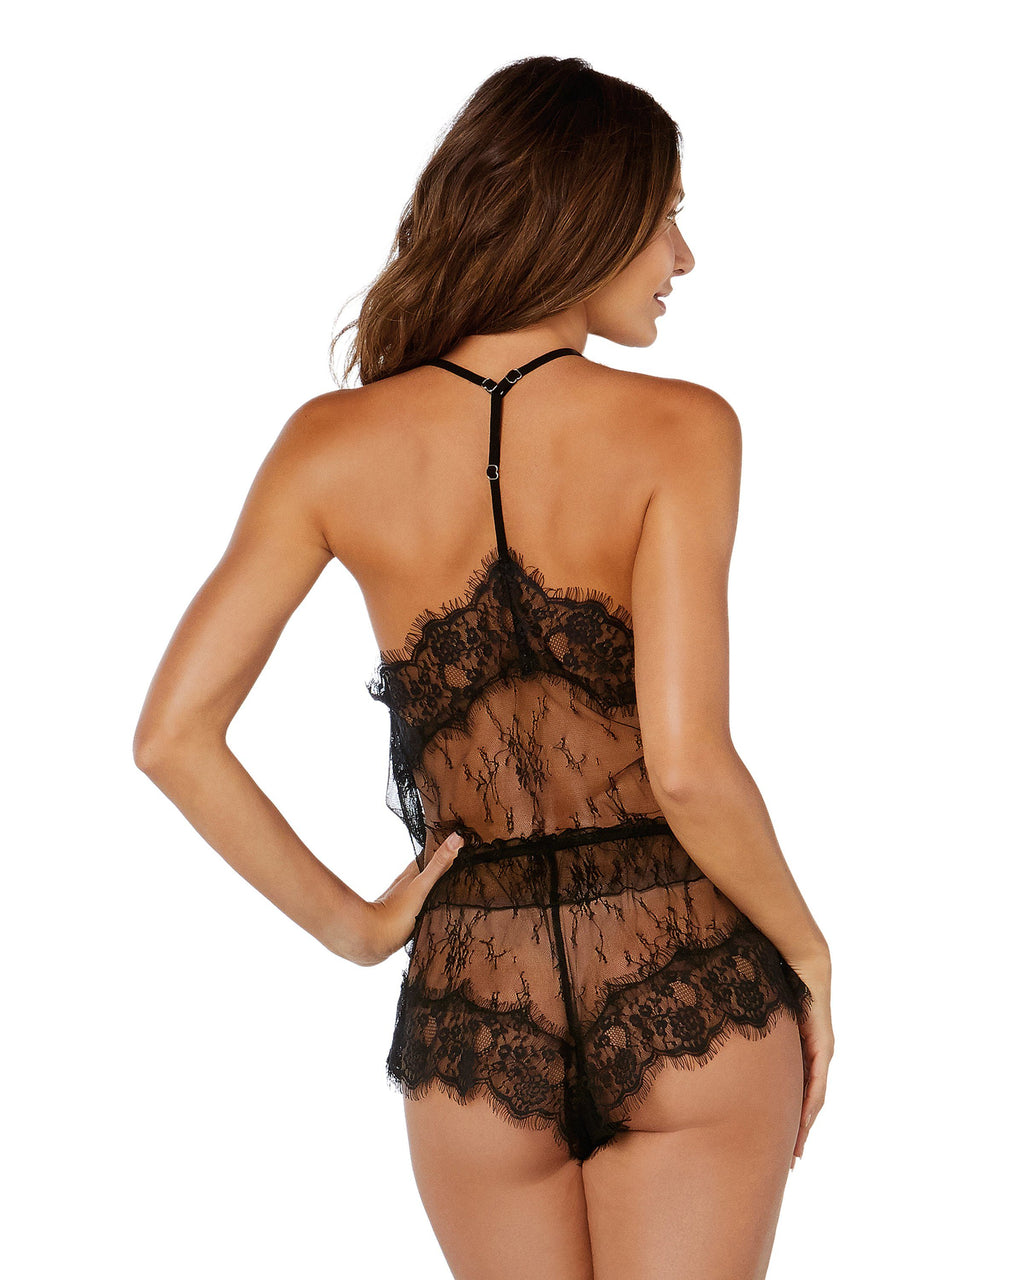 Delicate Floral Lace Camisole & Short Set Camisole Set Dreamgirl International